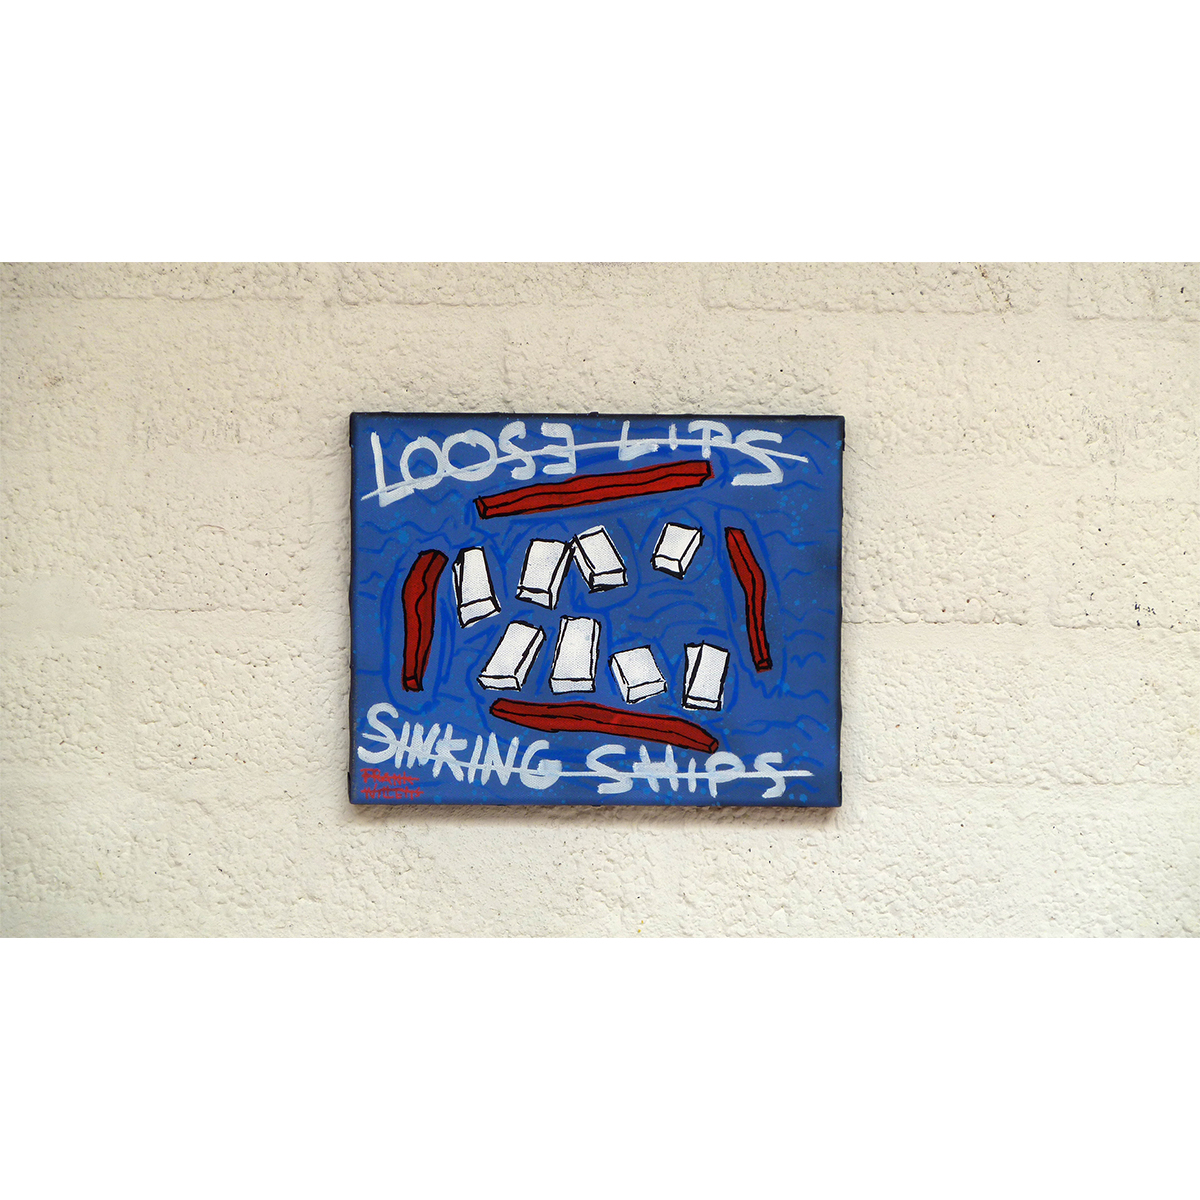 LOOSE LIPS, SINKING SHIPS 02 - Frank Willems